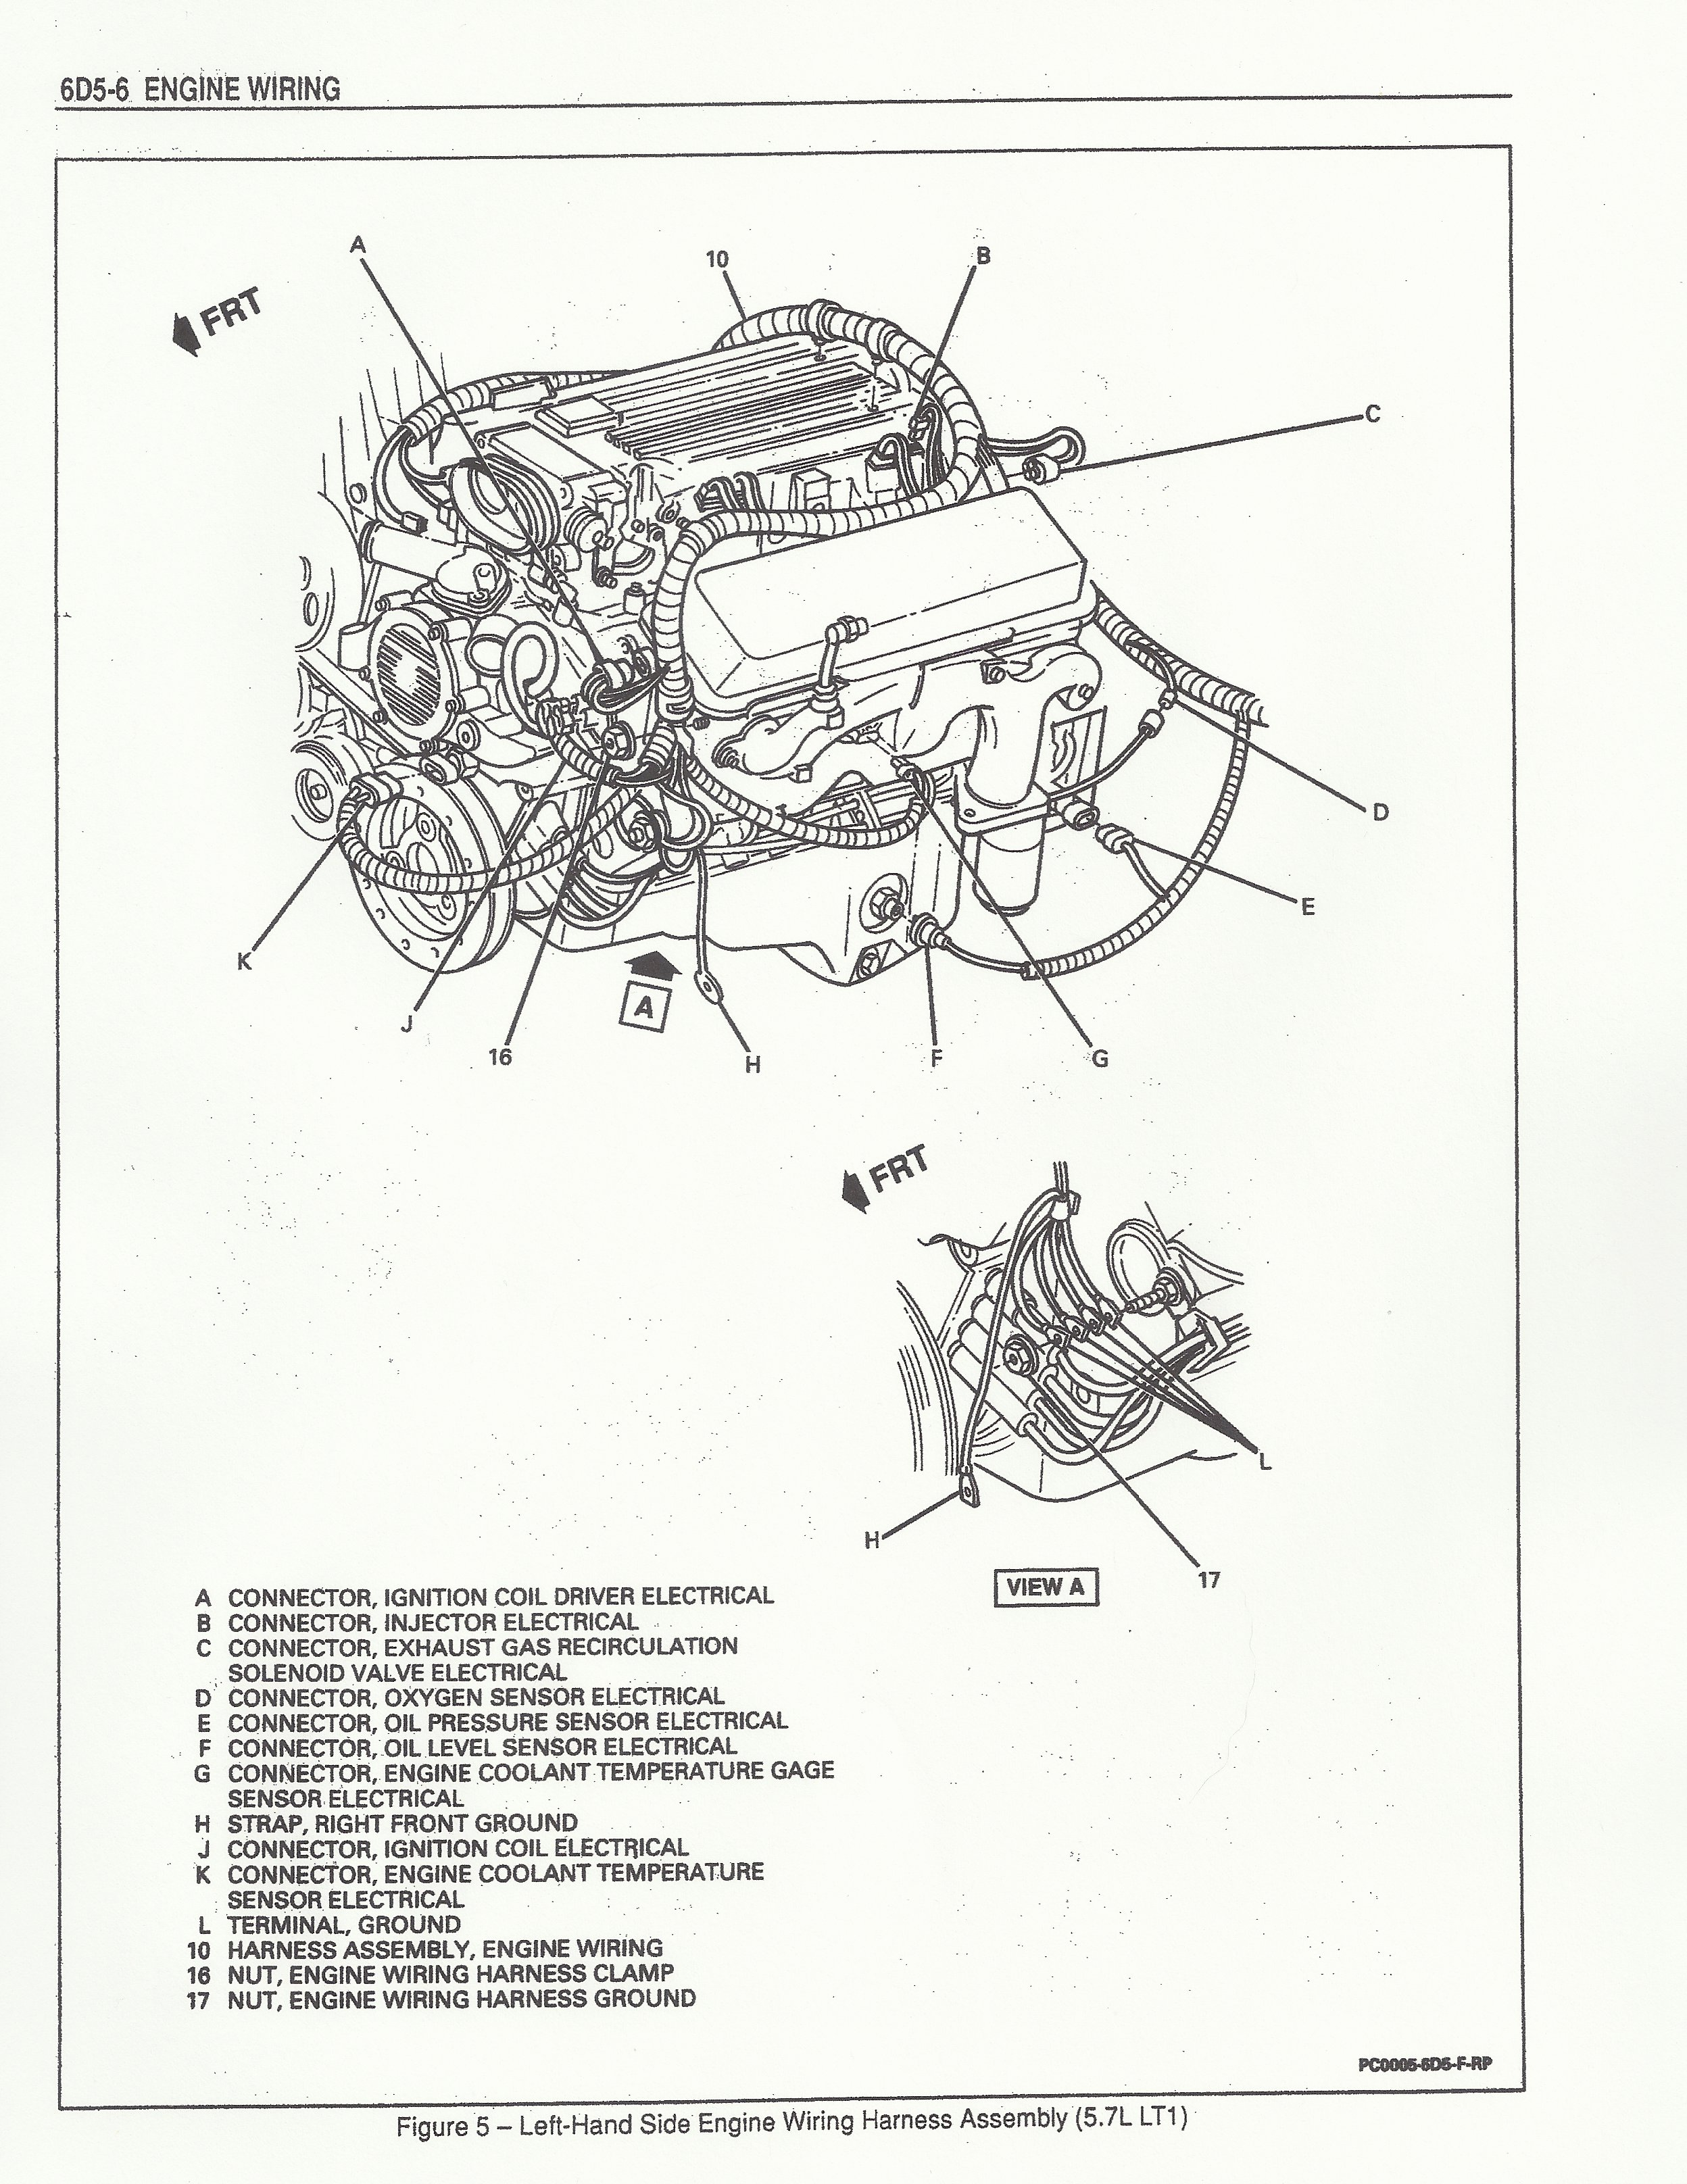 old fashioned lt1 wiring harness diagram images best images for rh oursweetbakeshop info 1985 Corvette Wiring Diagram 1993 4L60E Transmission Wiring Diagram